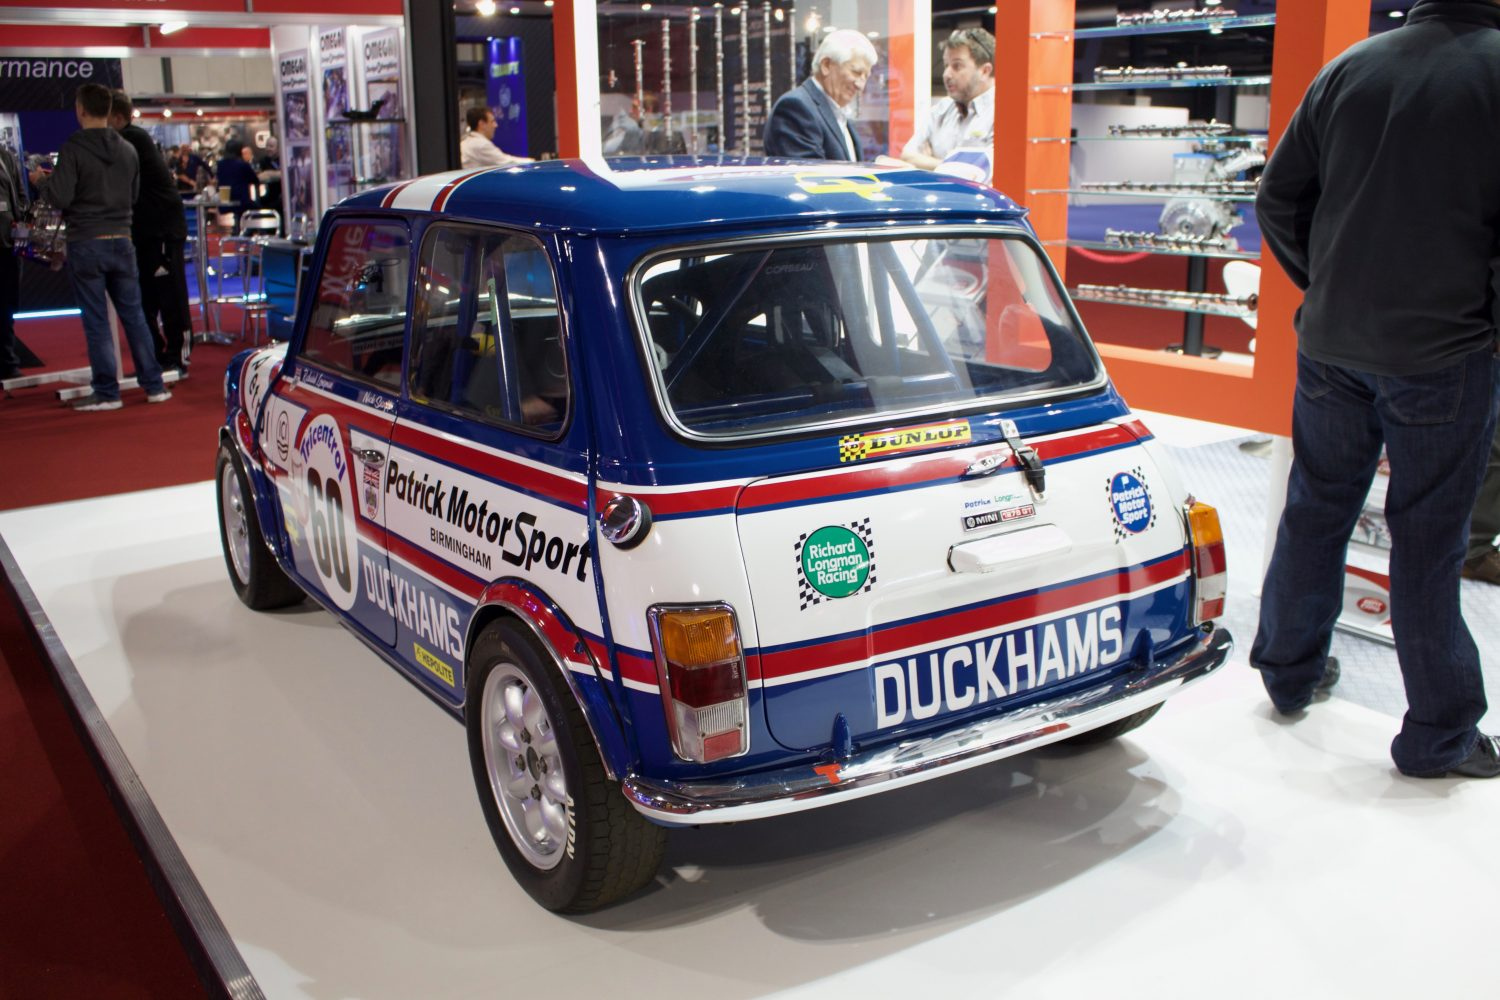 The invention of Duckhams Q20w-50 helped make the Mini possible